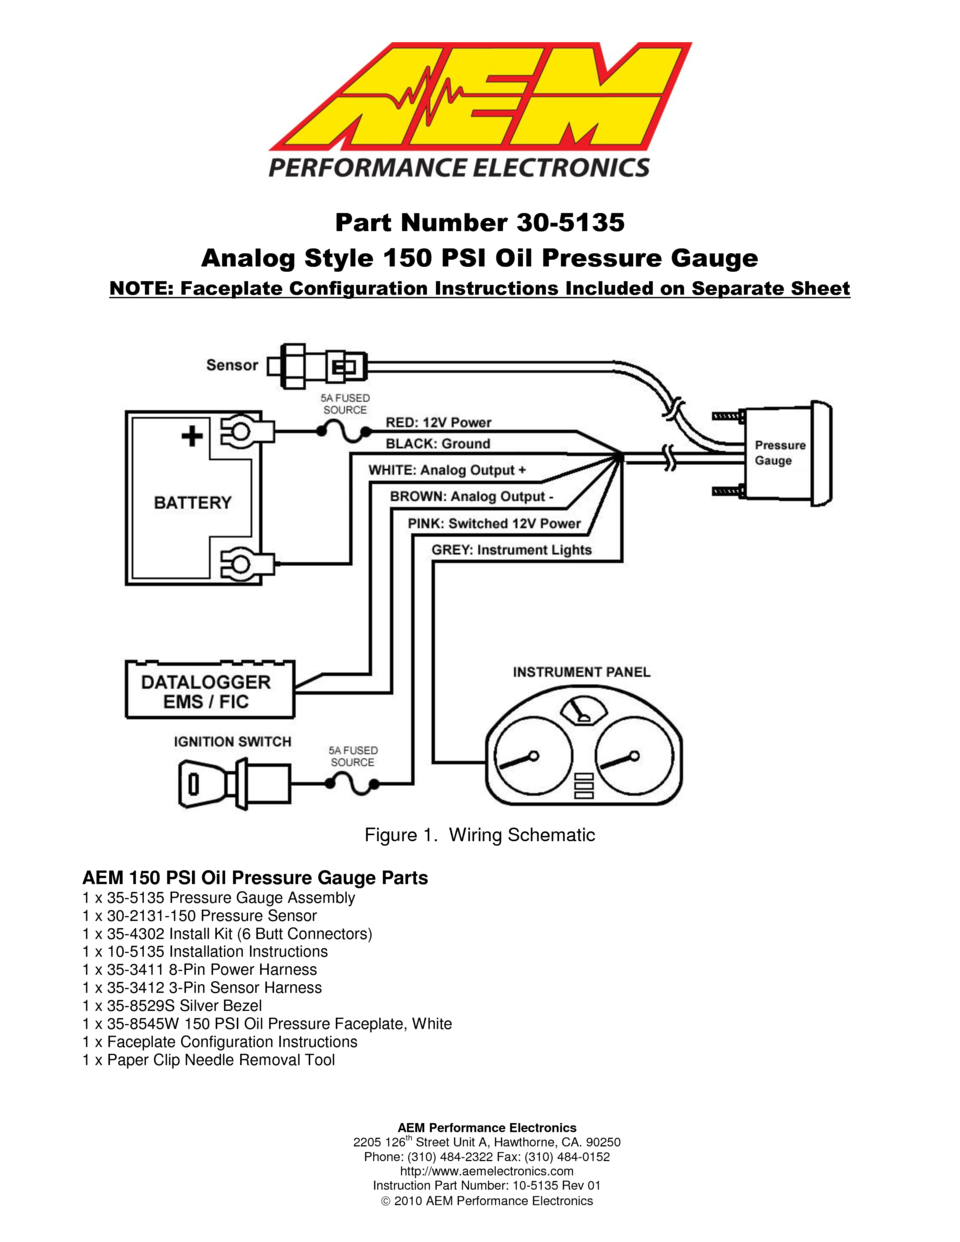 wrg 5531 oil pressure gauge wiring diagram greddy oil pressure gauge wiring diagram pretty oil pressure gauge wiring diagram contemporary electrical